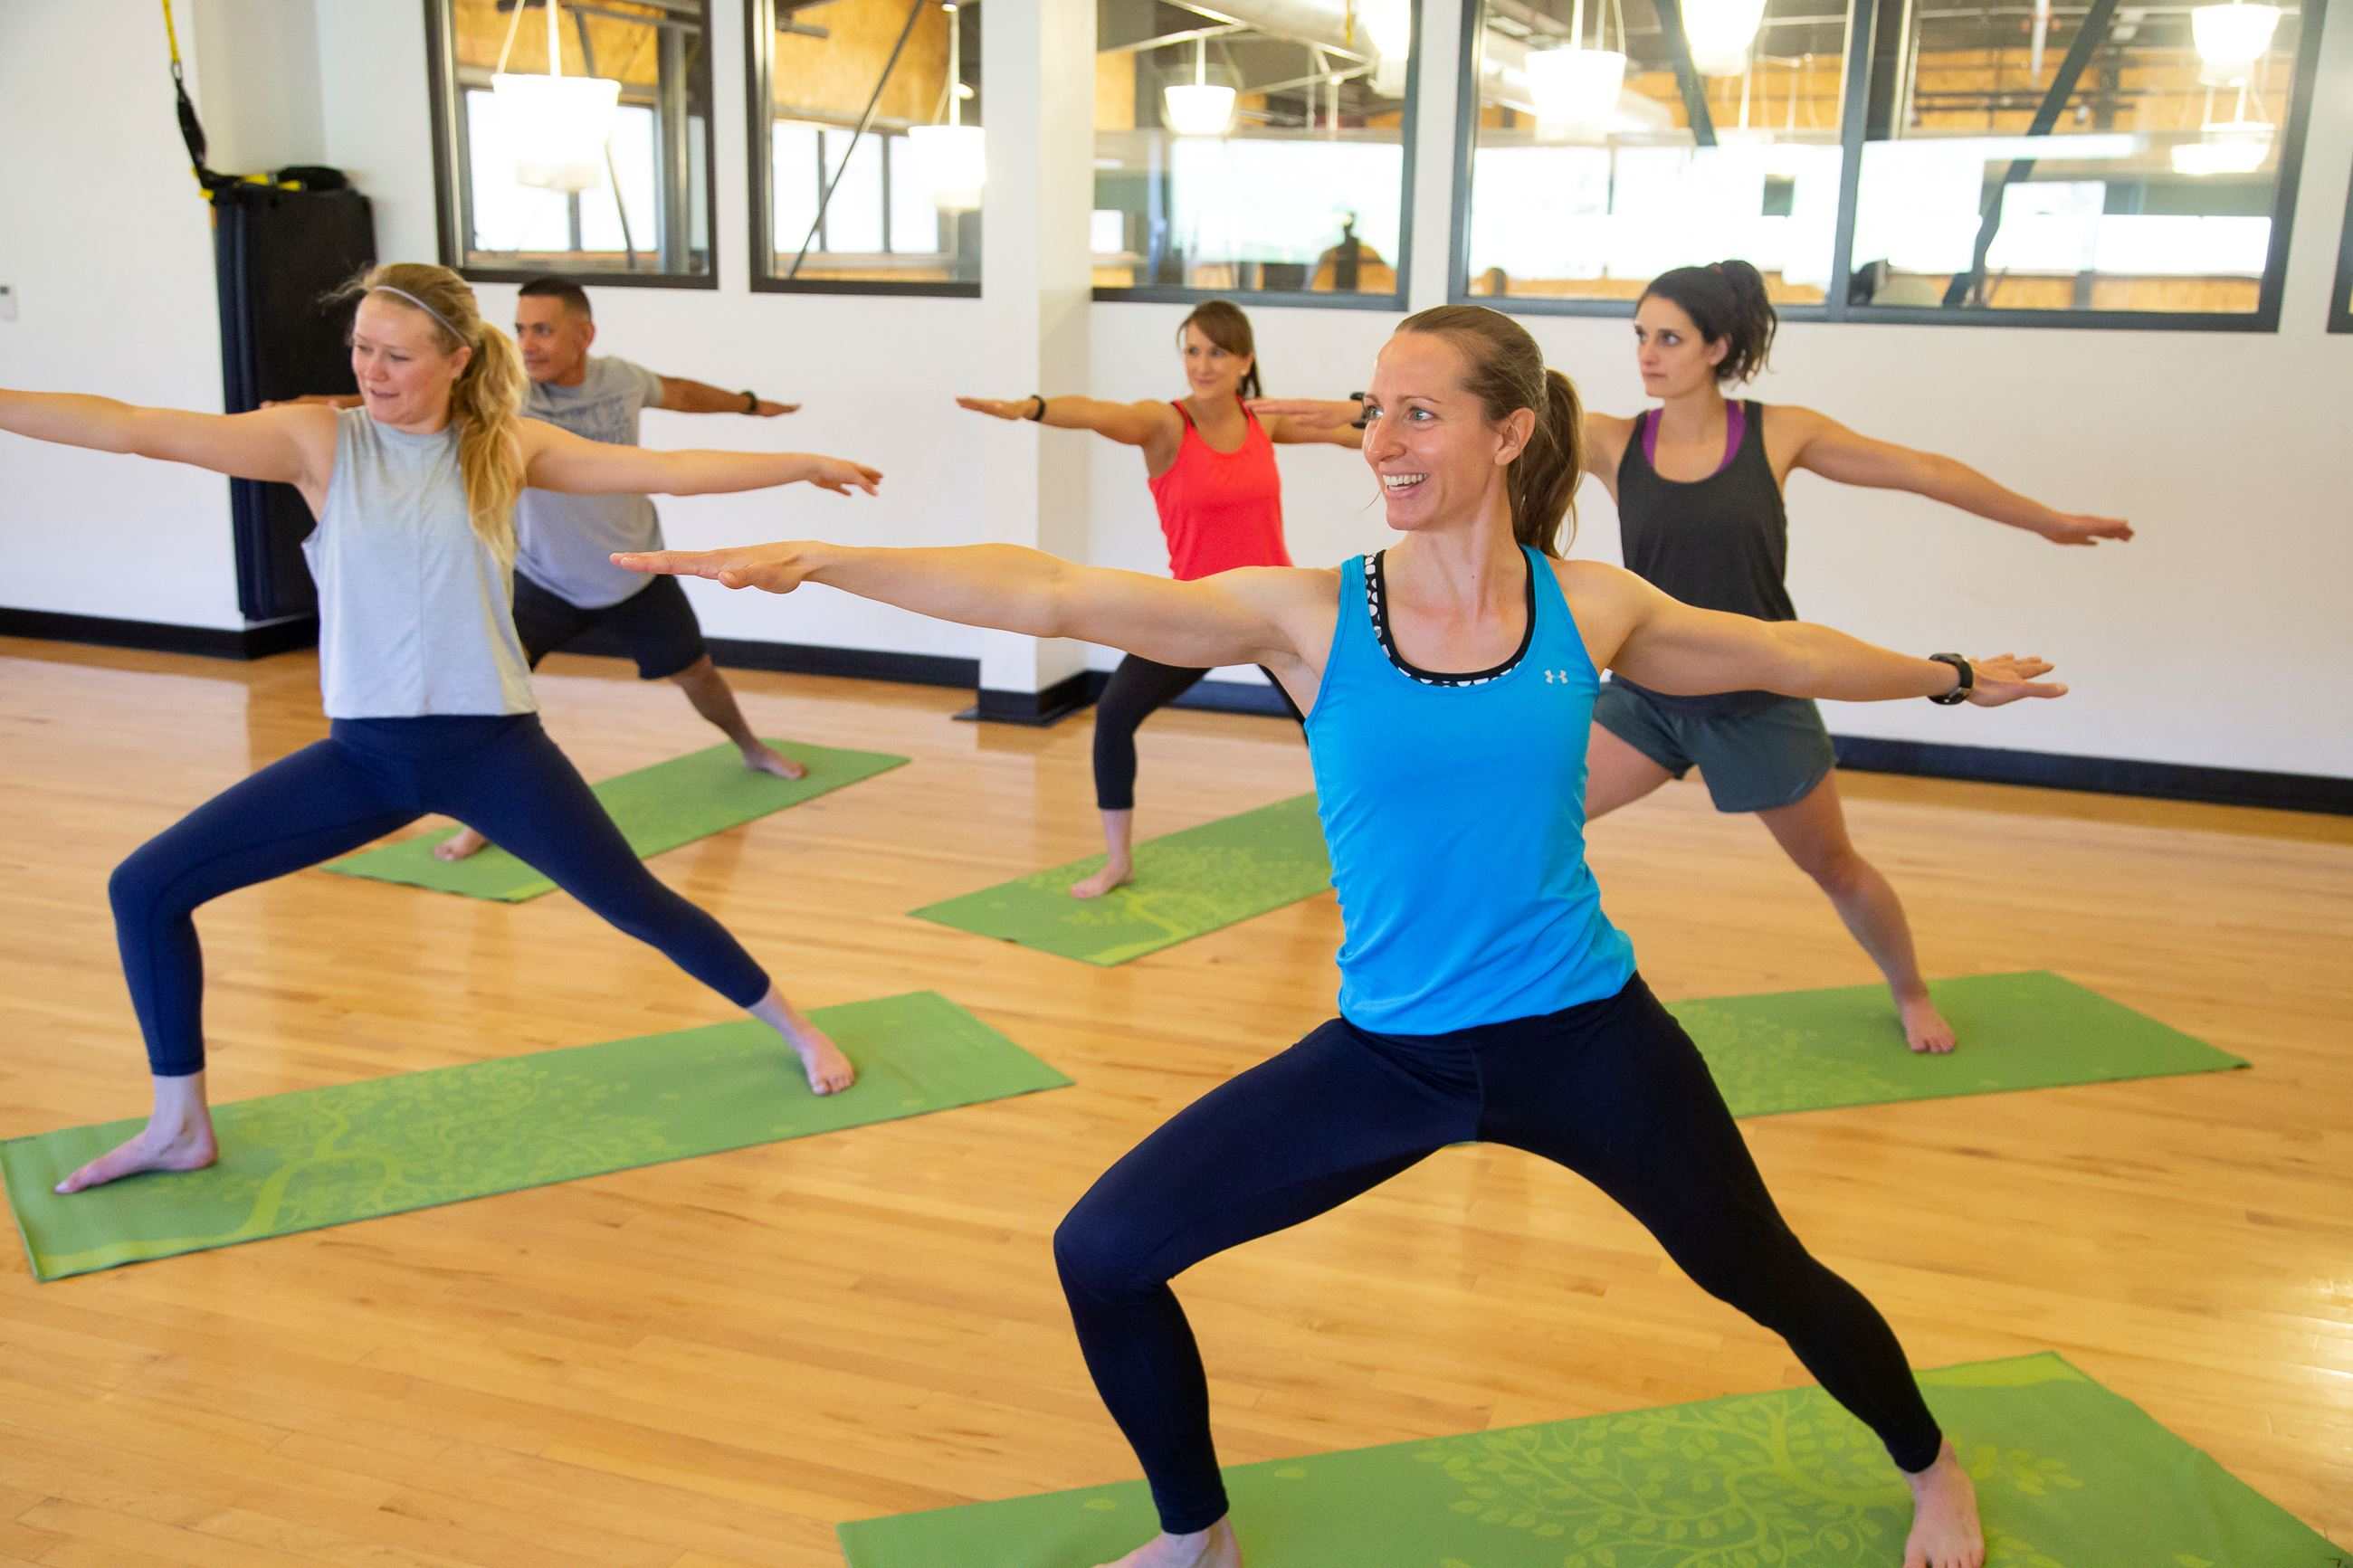 Group Practicing Warrior Pose in Yoga Class